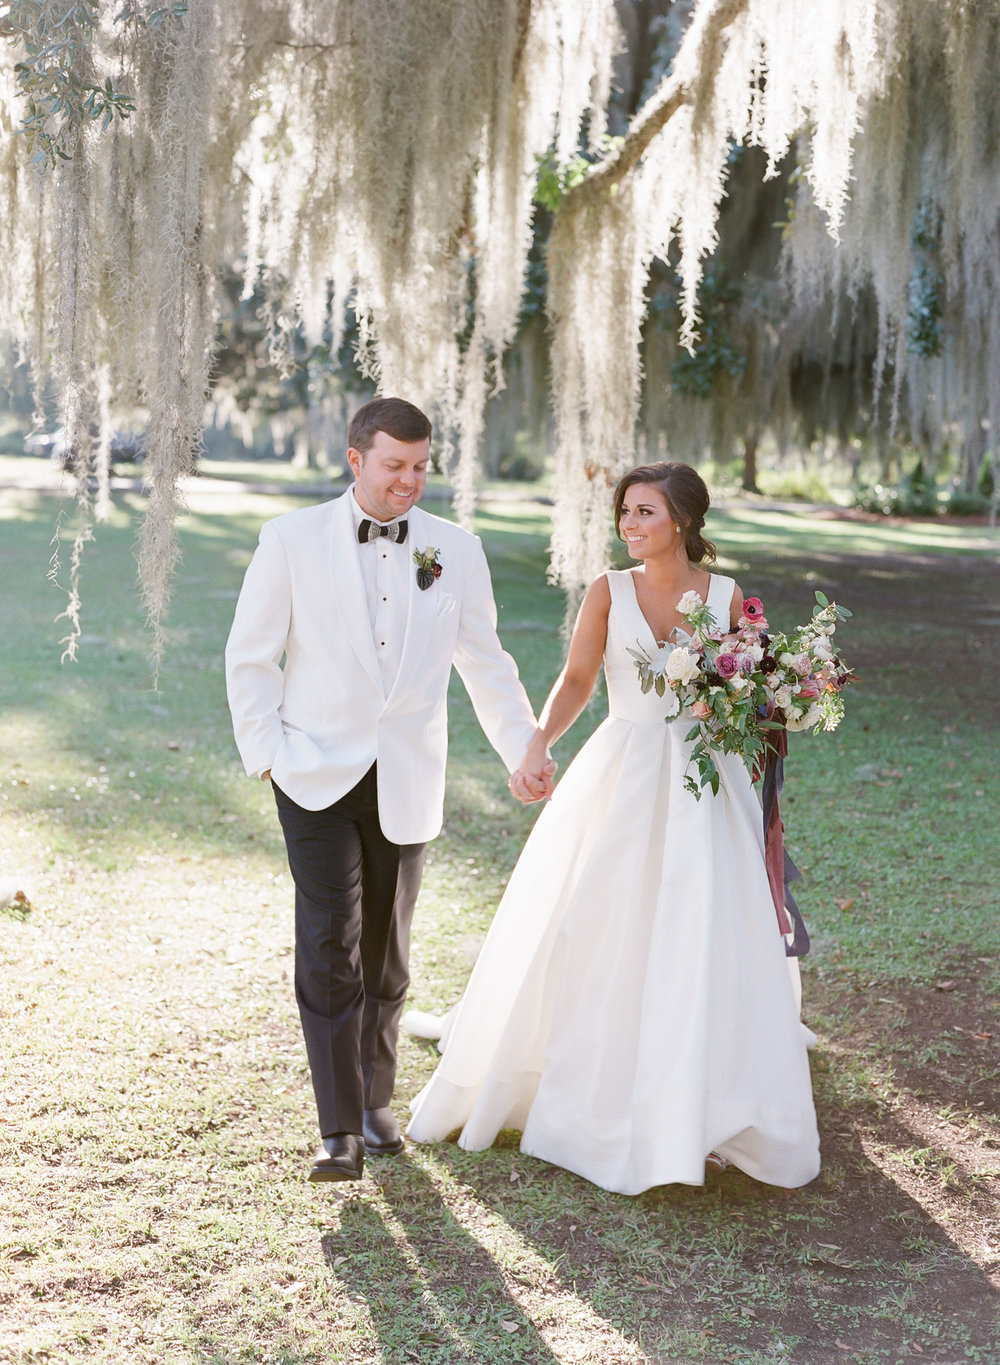 Charleston-Wedding-Photographer-50.jpg